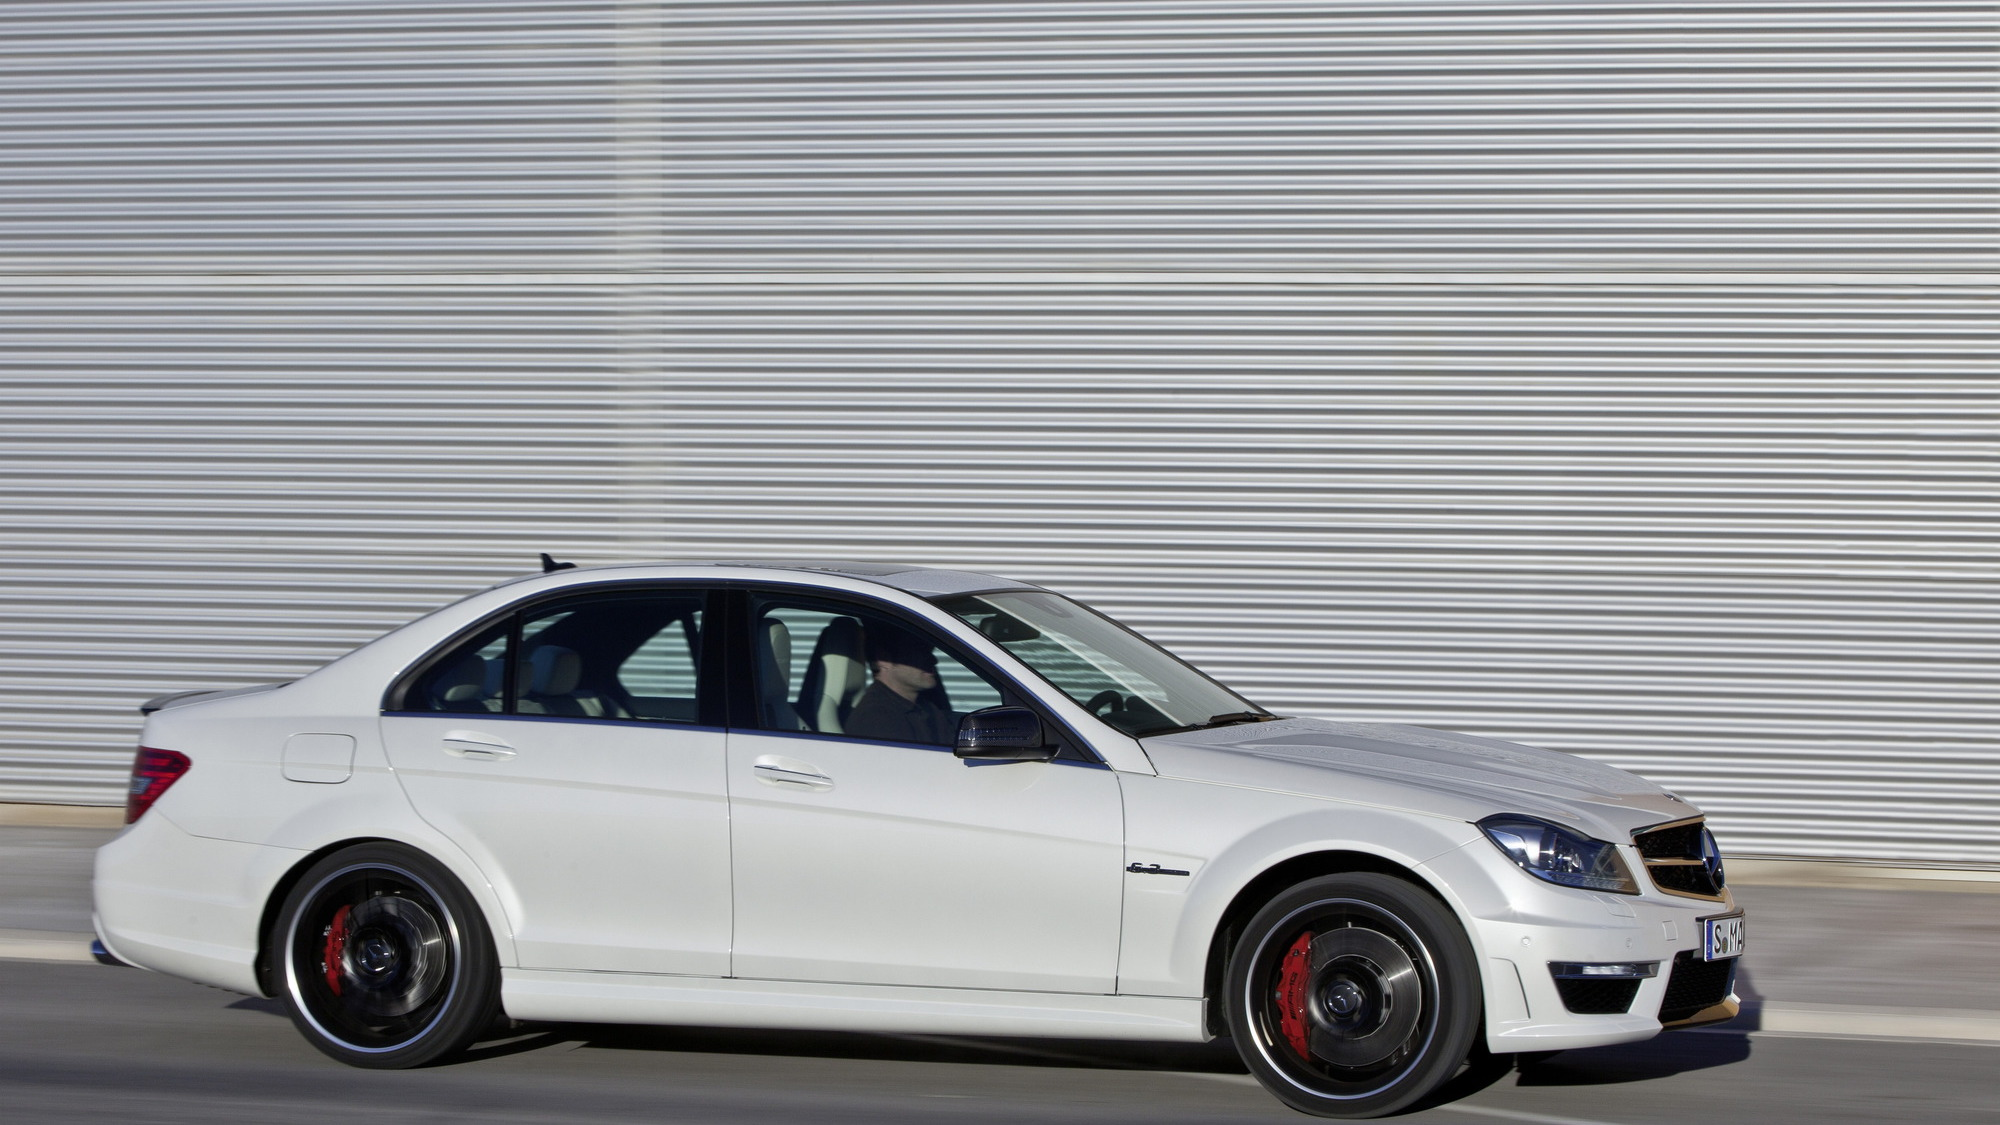 2012 Mercedes-Benz C63 AMG official photos